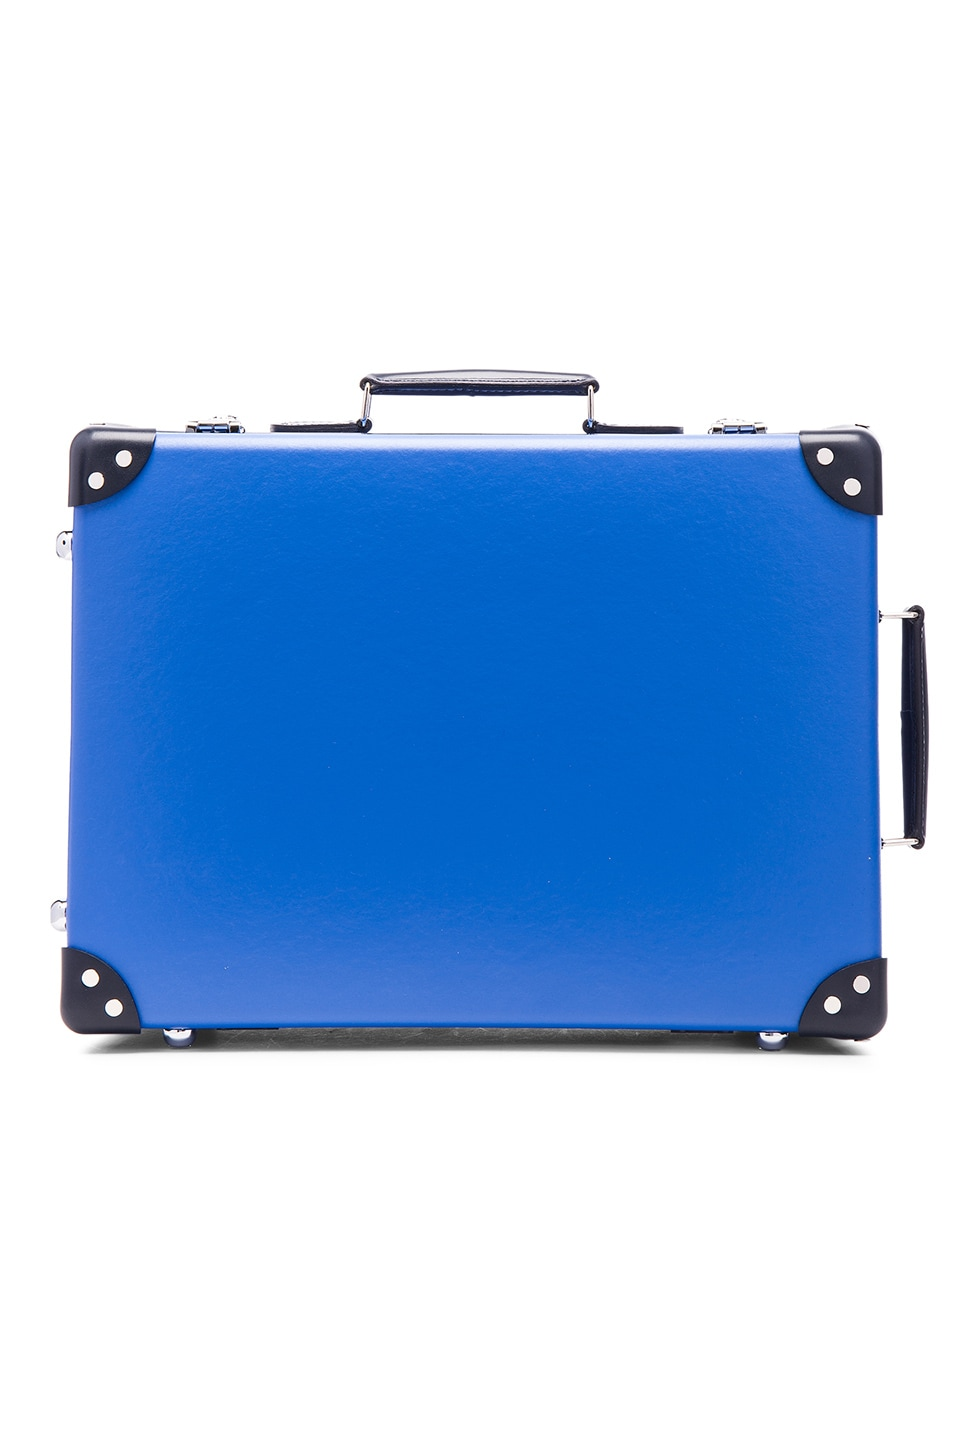 "GLOBE-TROTTER 18"" CRUISE TROLLEY CASE IN BLUE"